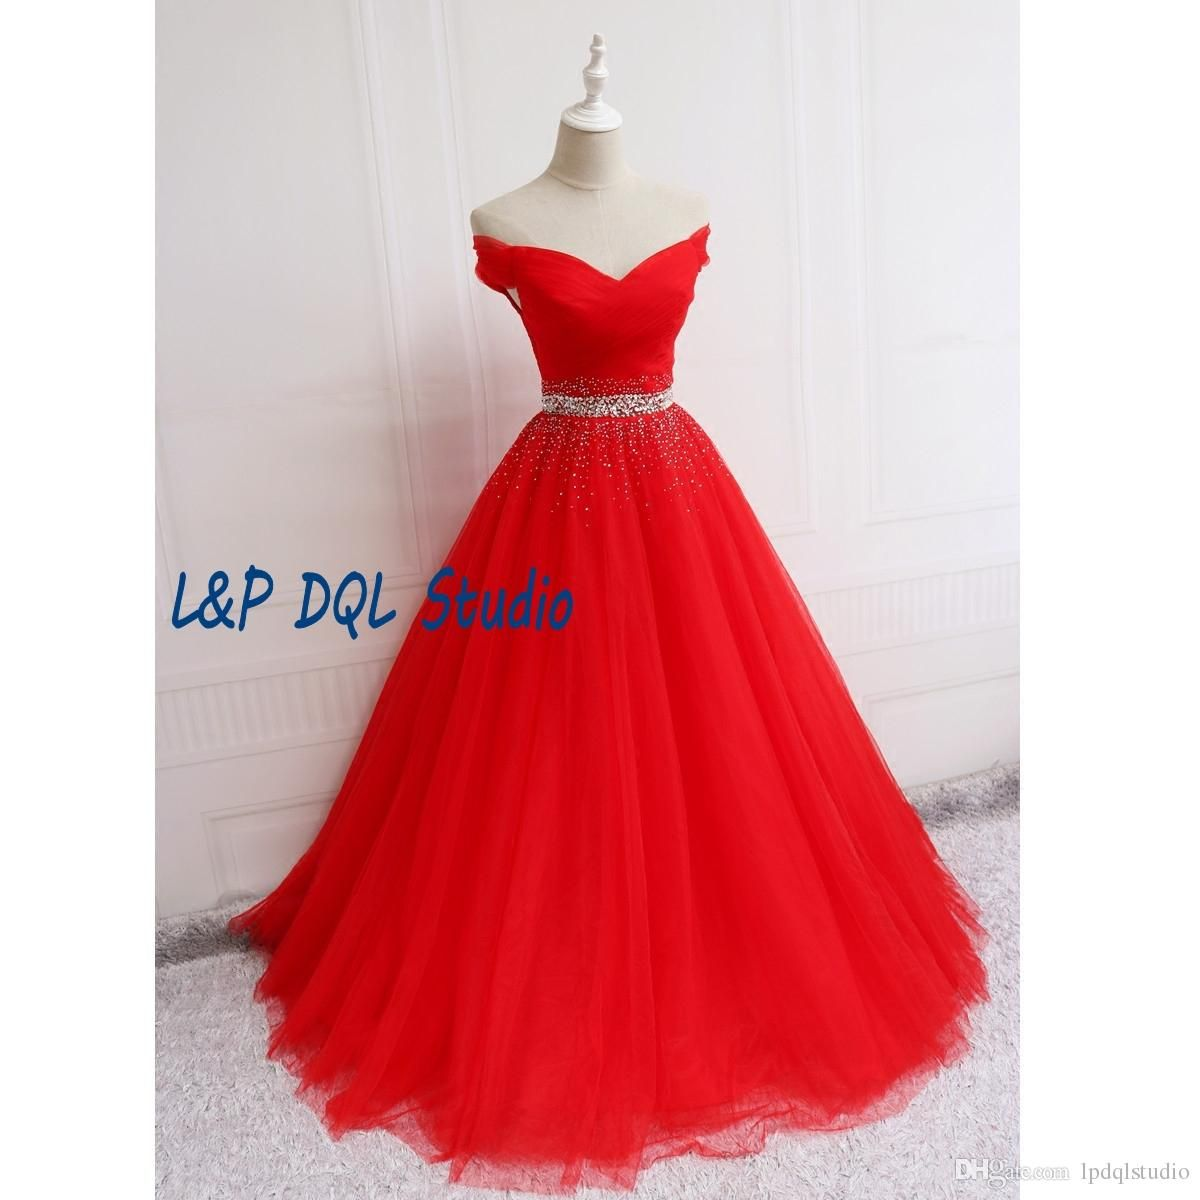 Gorgeous red ball gown prom dresses off shoulder laceup back long